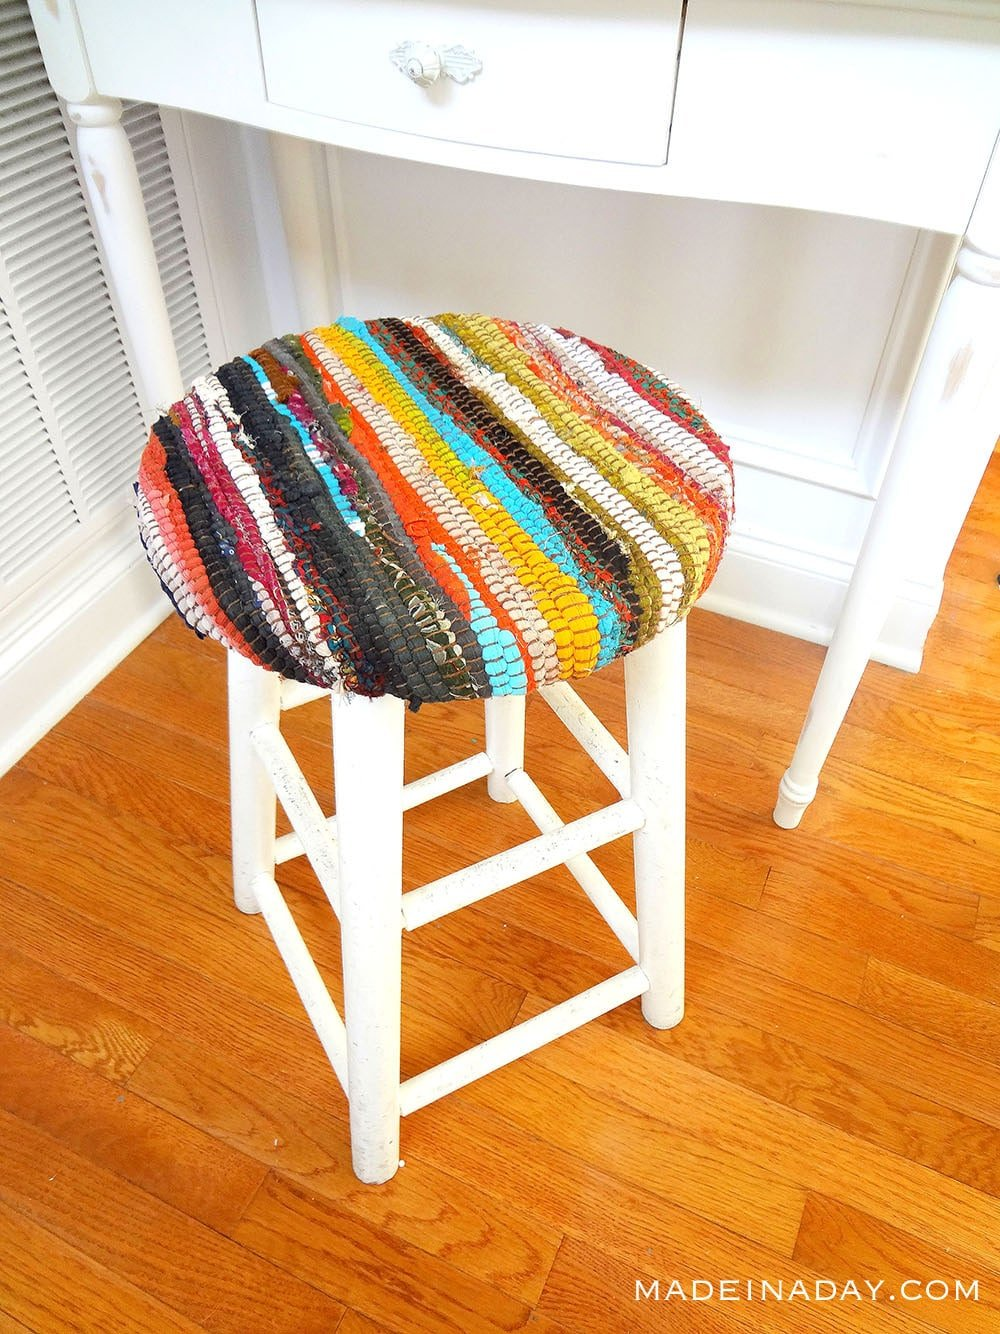 Recycled Fabric Stool Using a Rag Rug